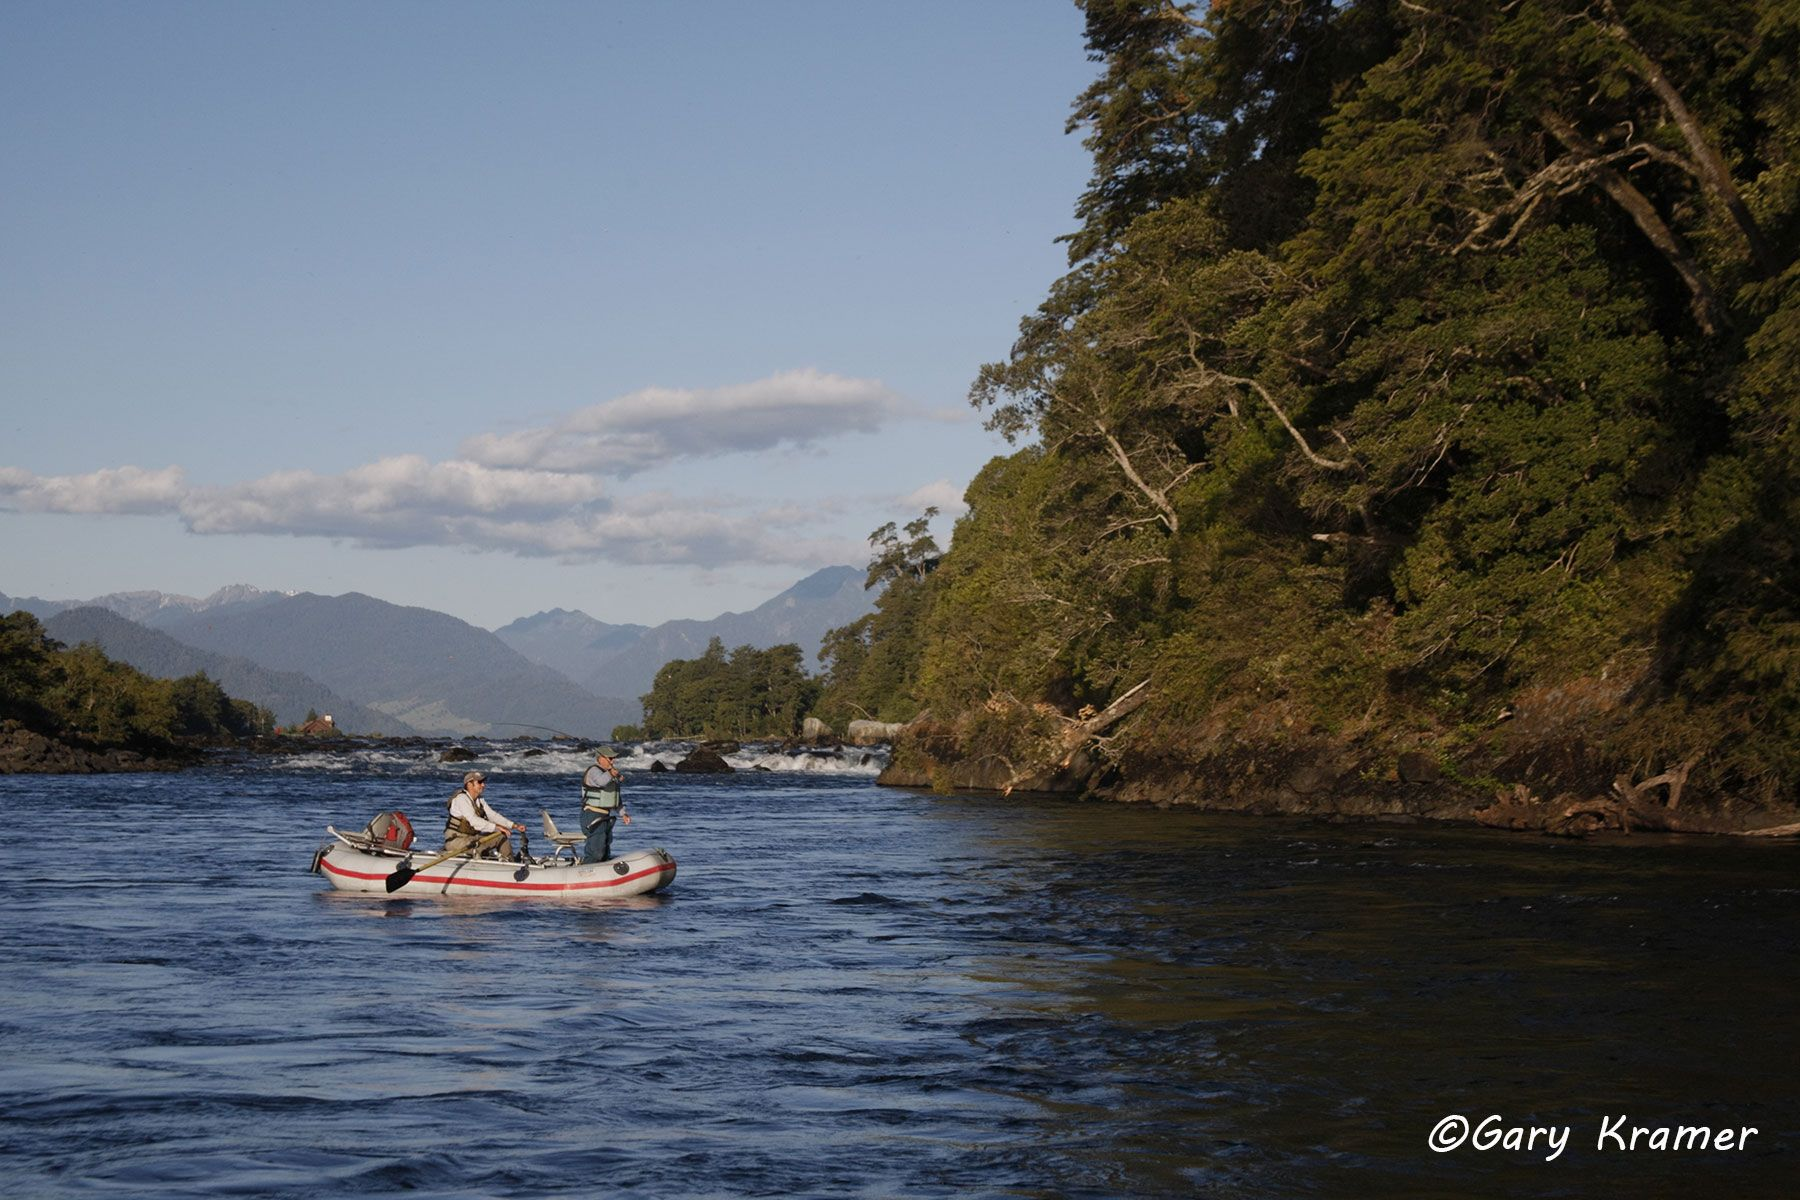 Flyfishing for Trout from rubber raft, Chile - NFTdr#115d